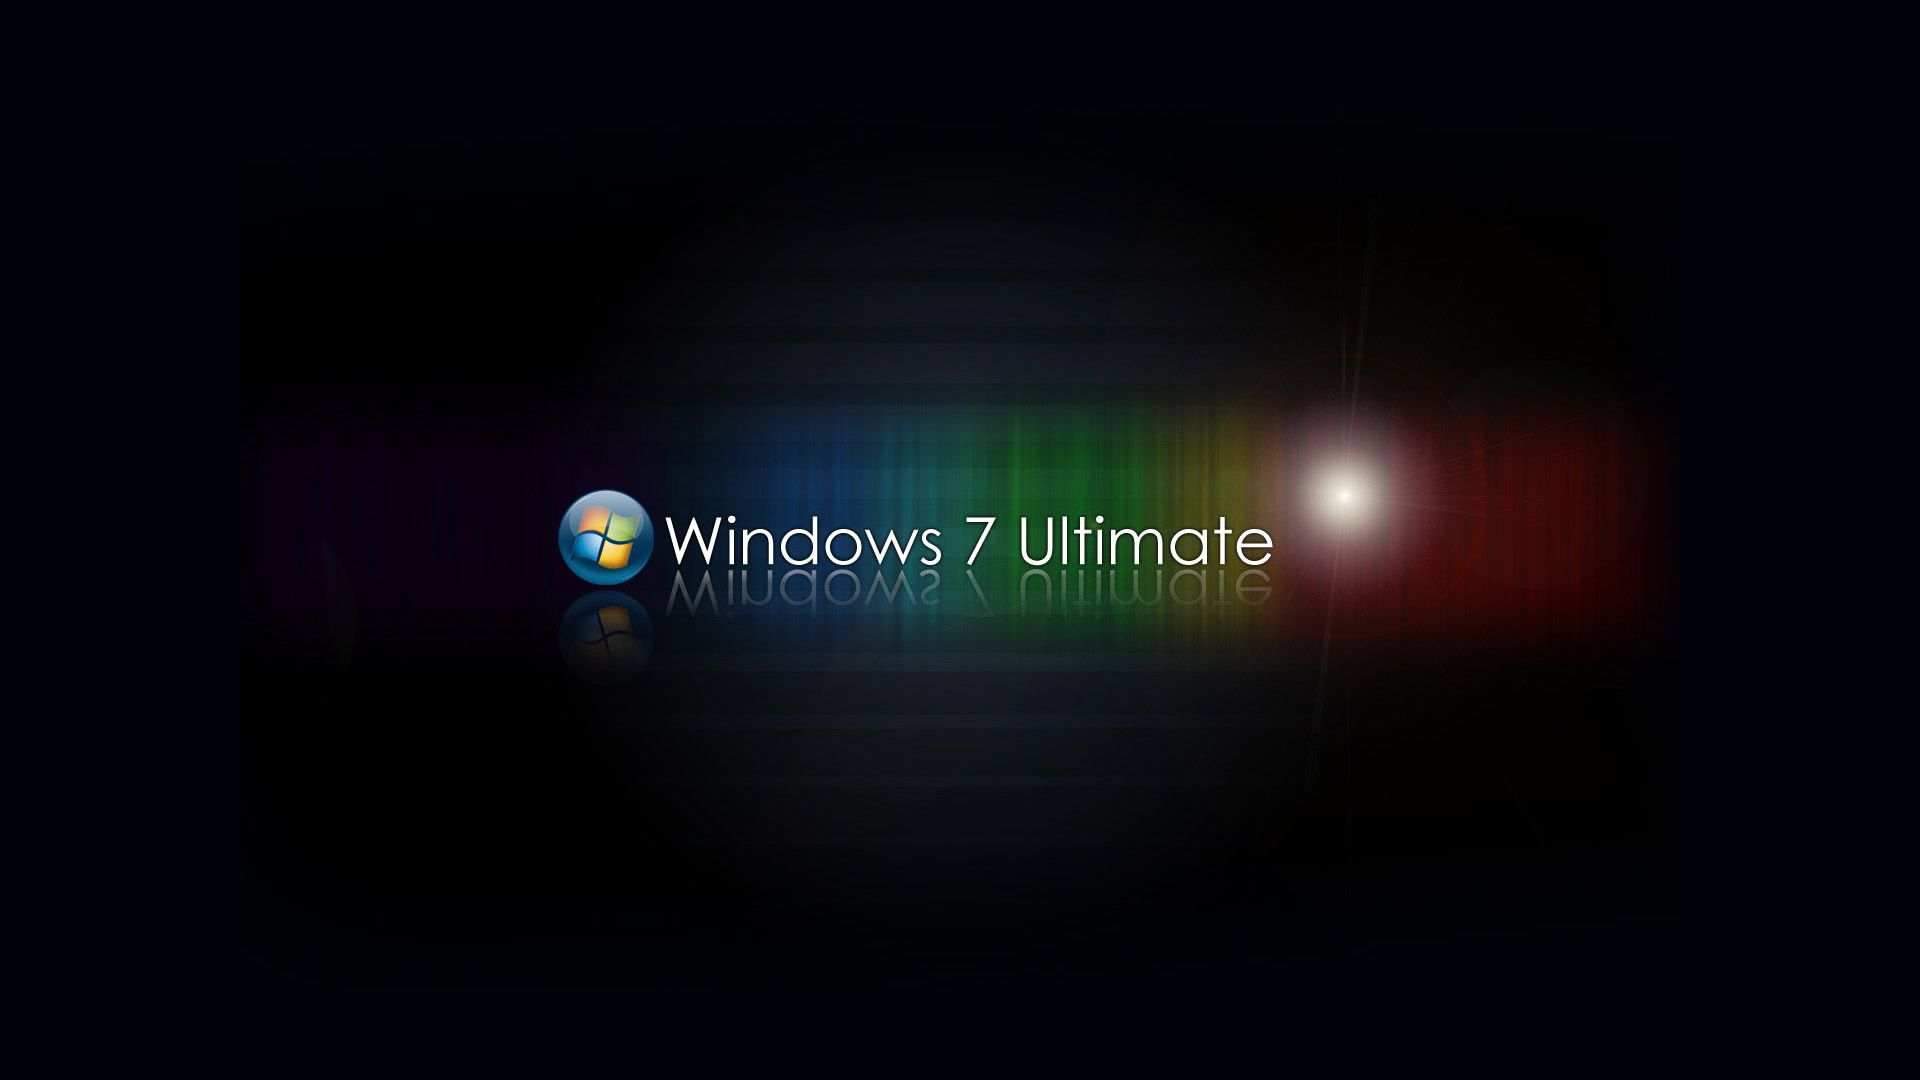 Windows 7 Ultimate Wallpaper 1920x1080